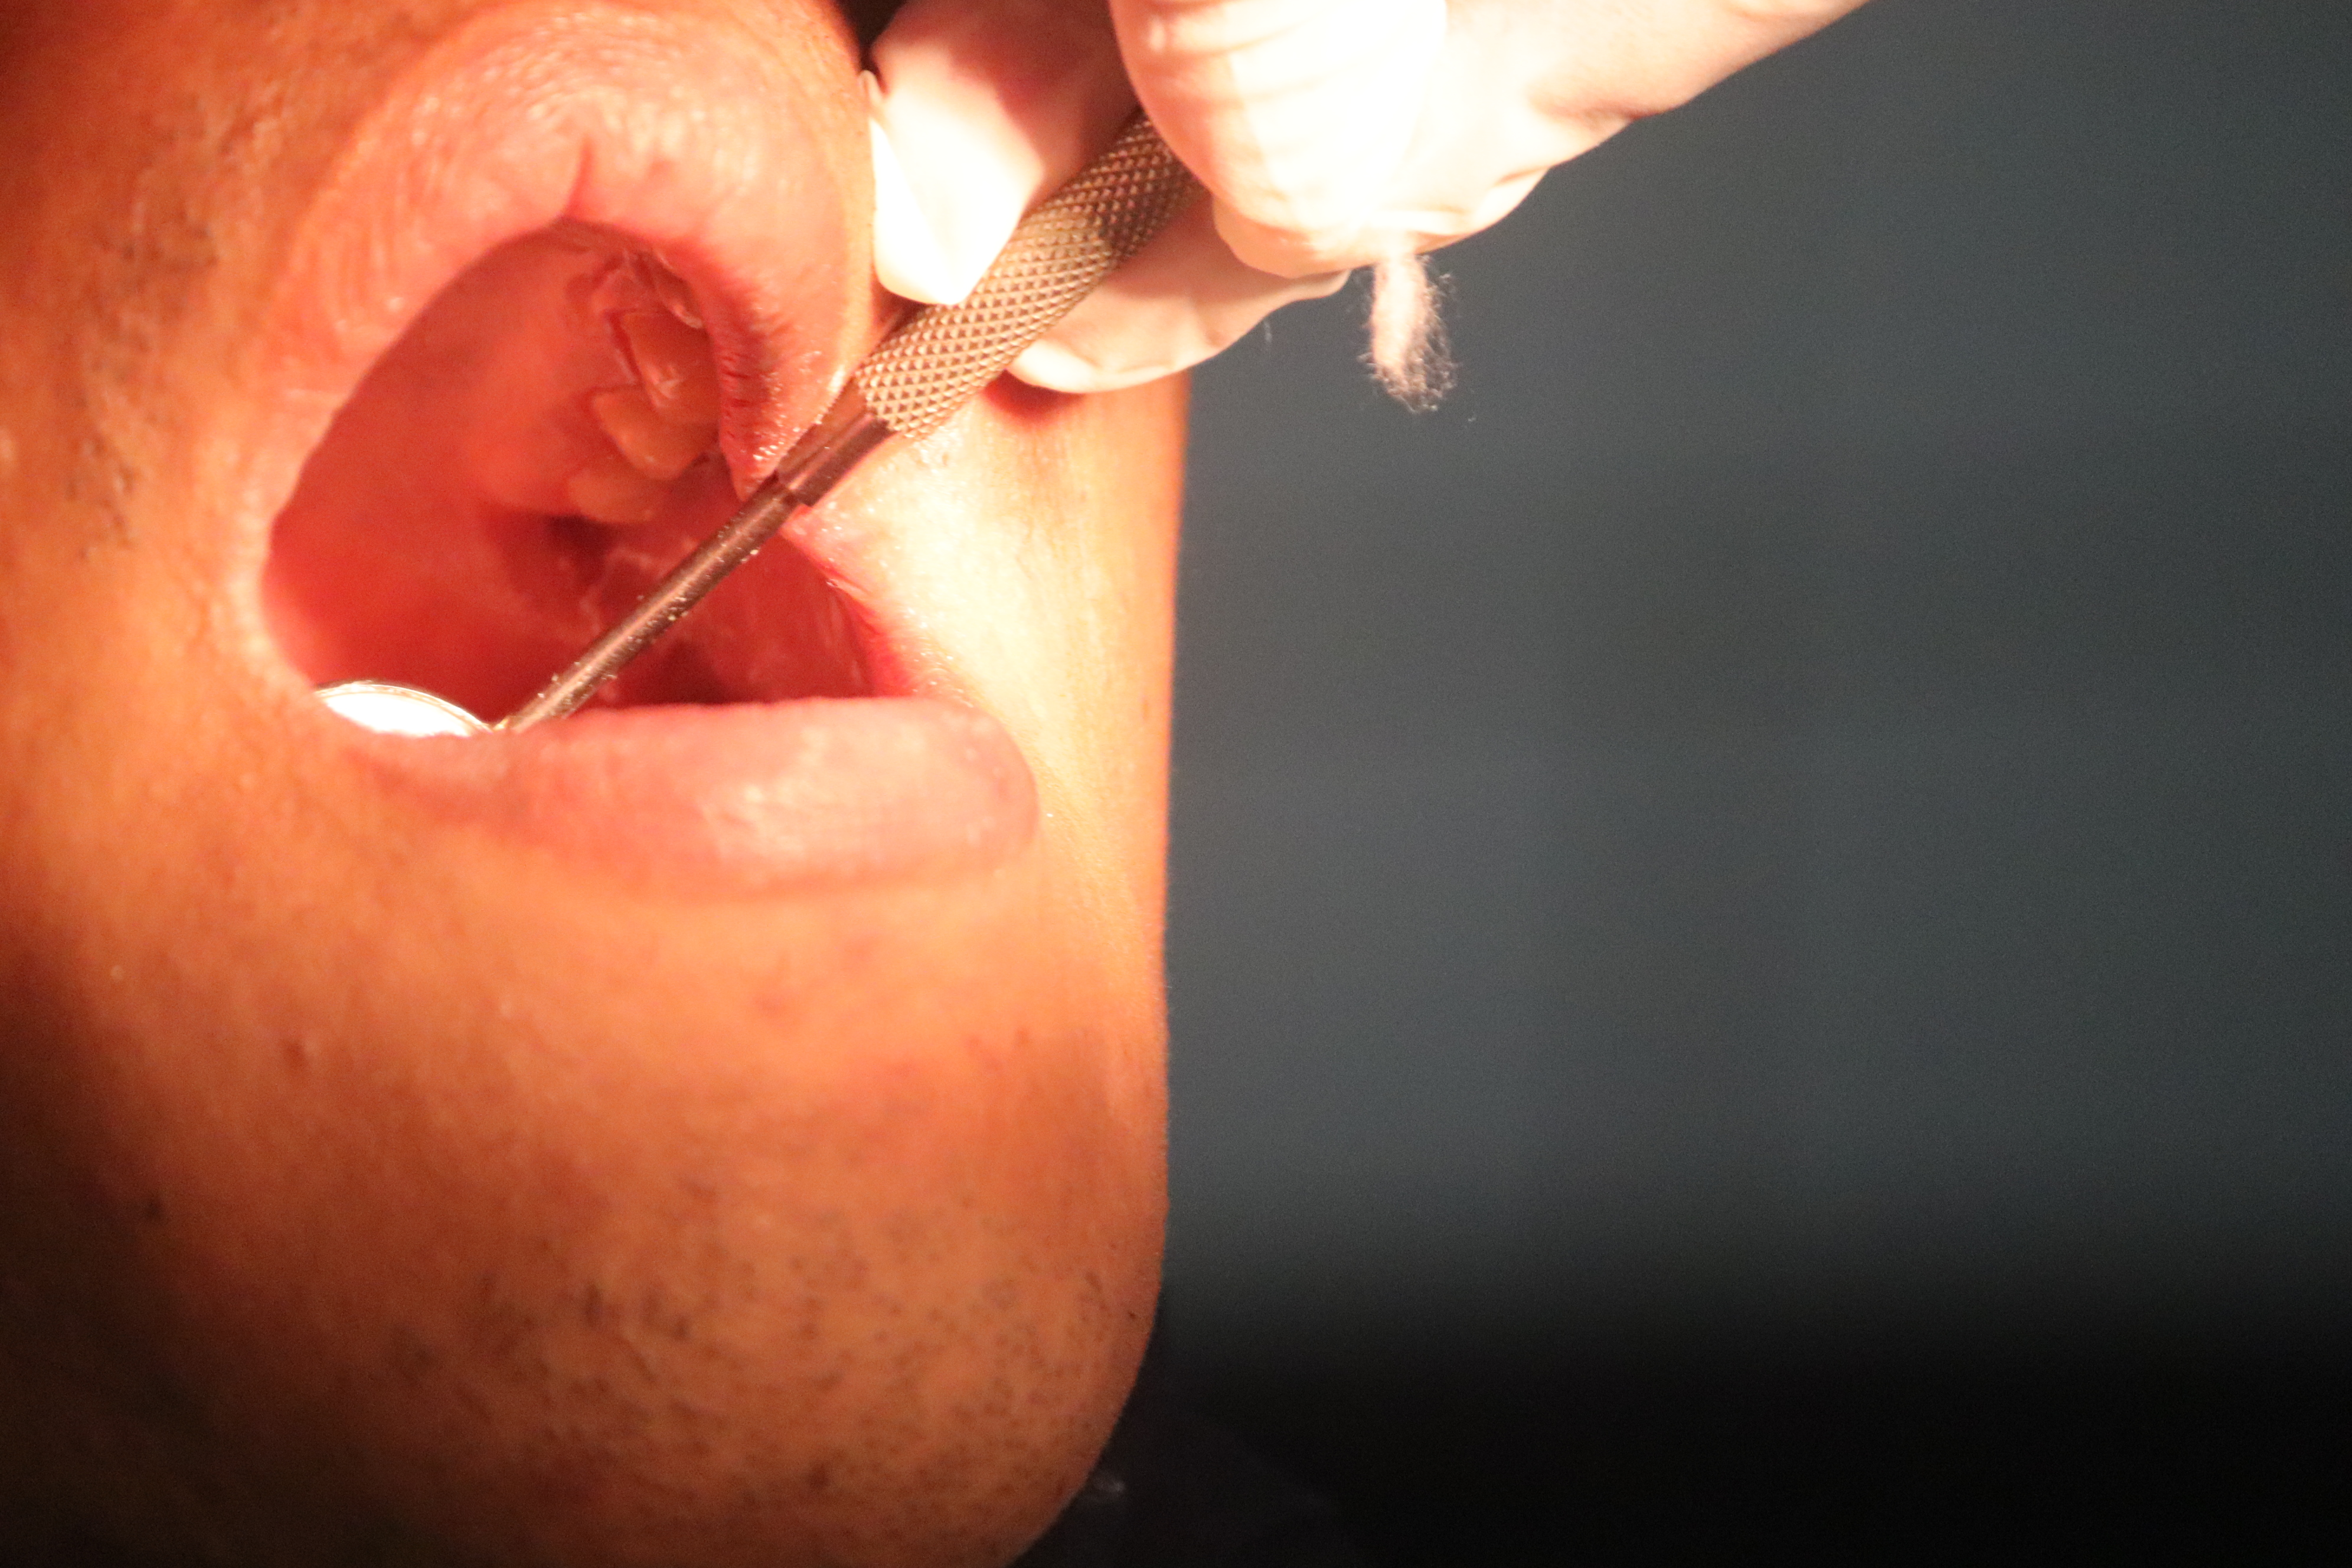 a dentist is filling cavities in a hospital dental clinic